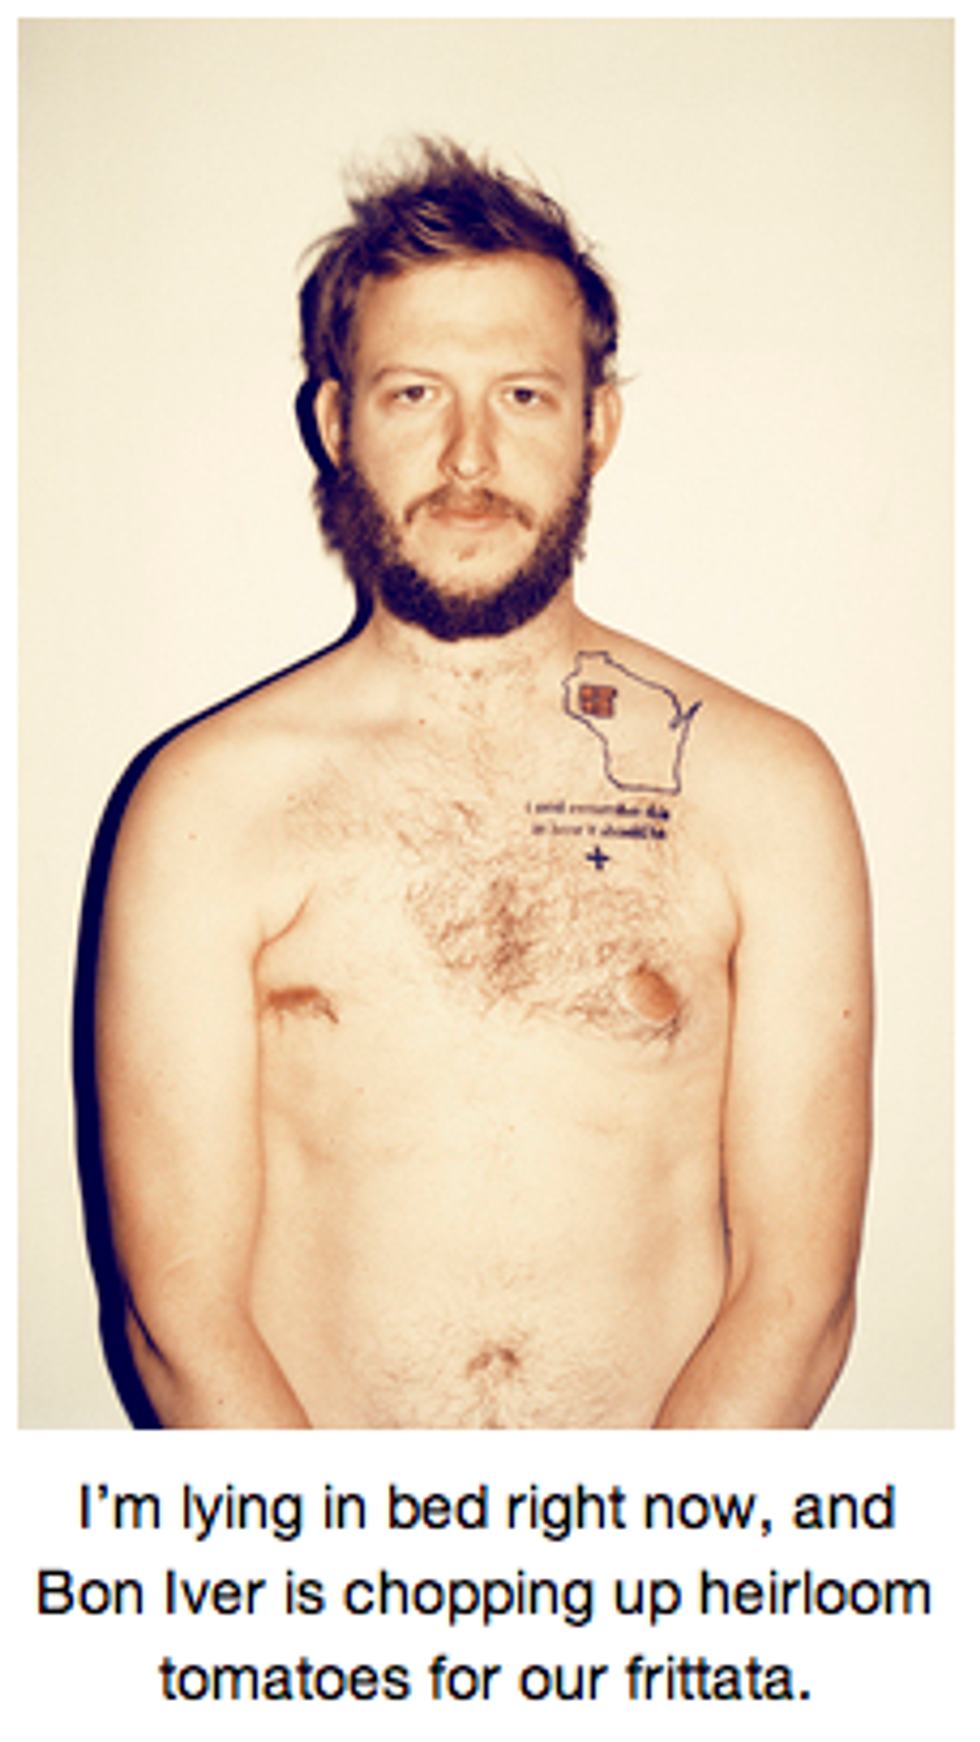 The Best Craigslist Ad Ever + Bon Iver Erotica = Eight Items Or Less